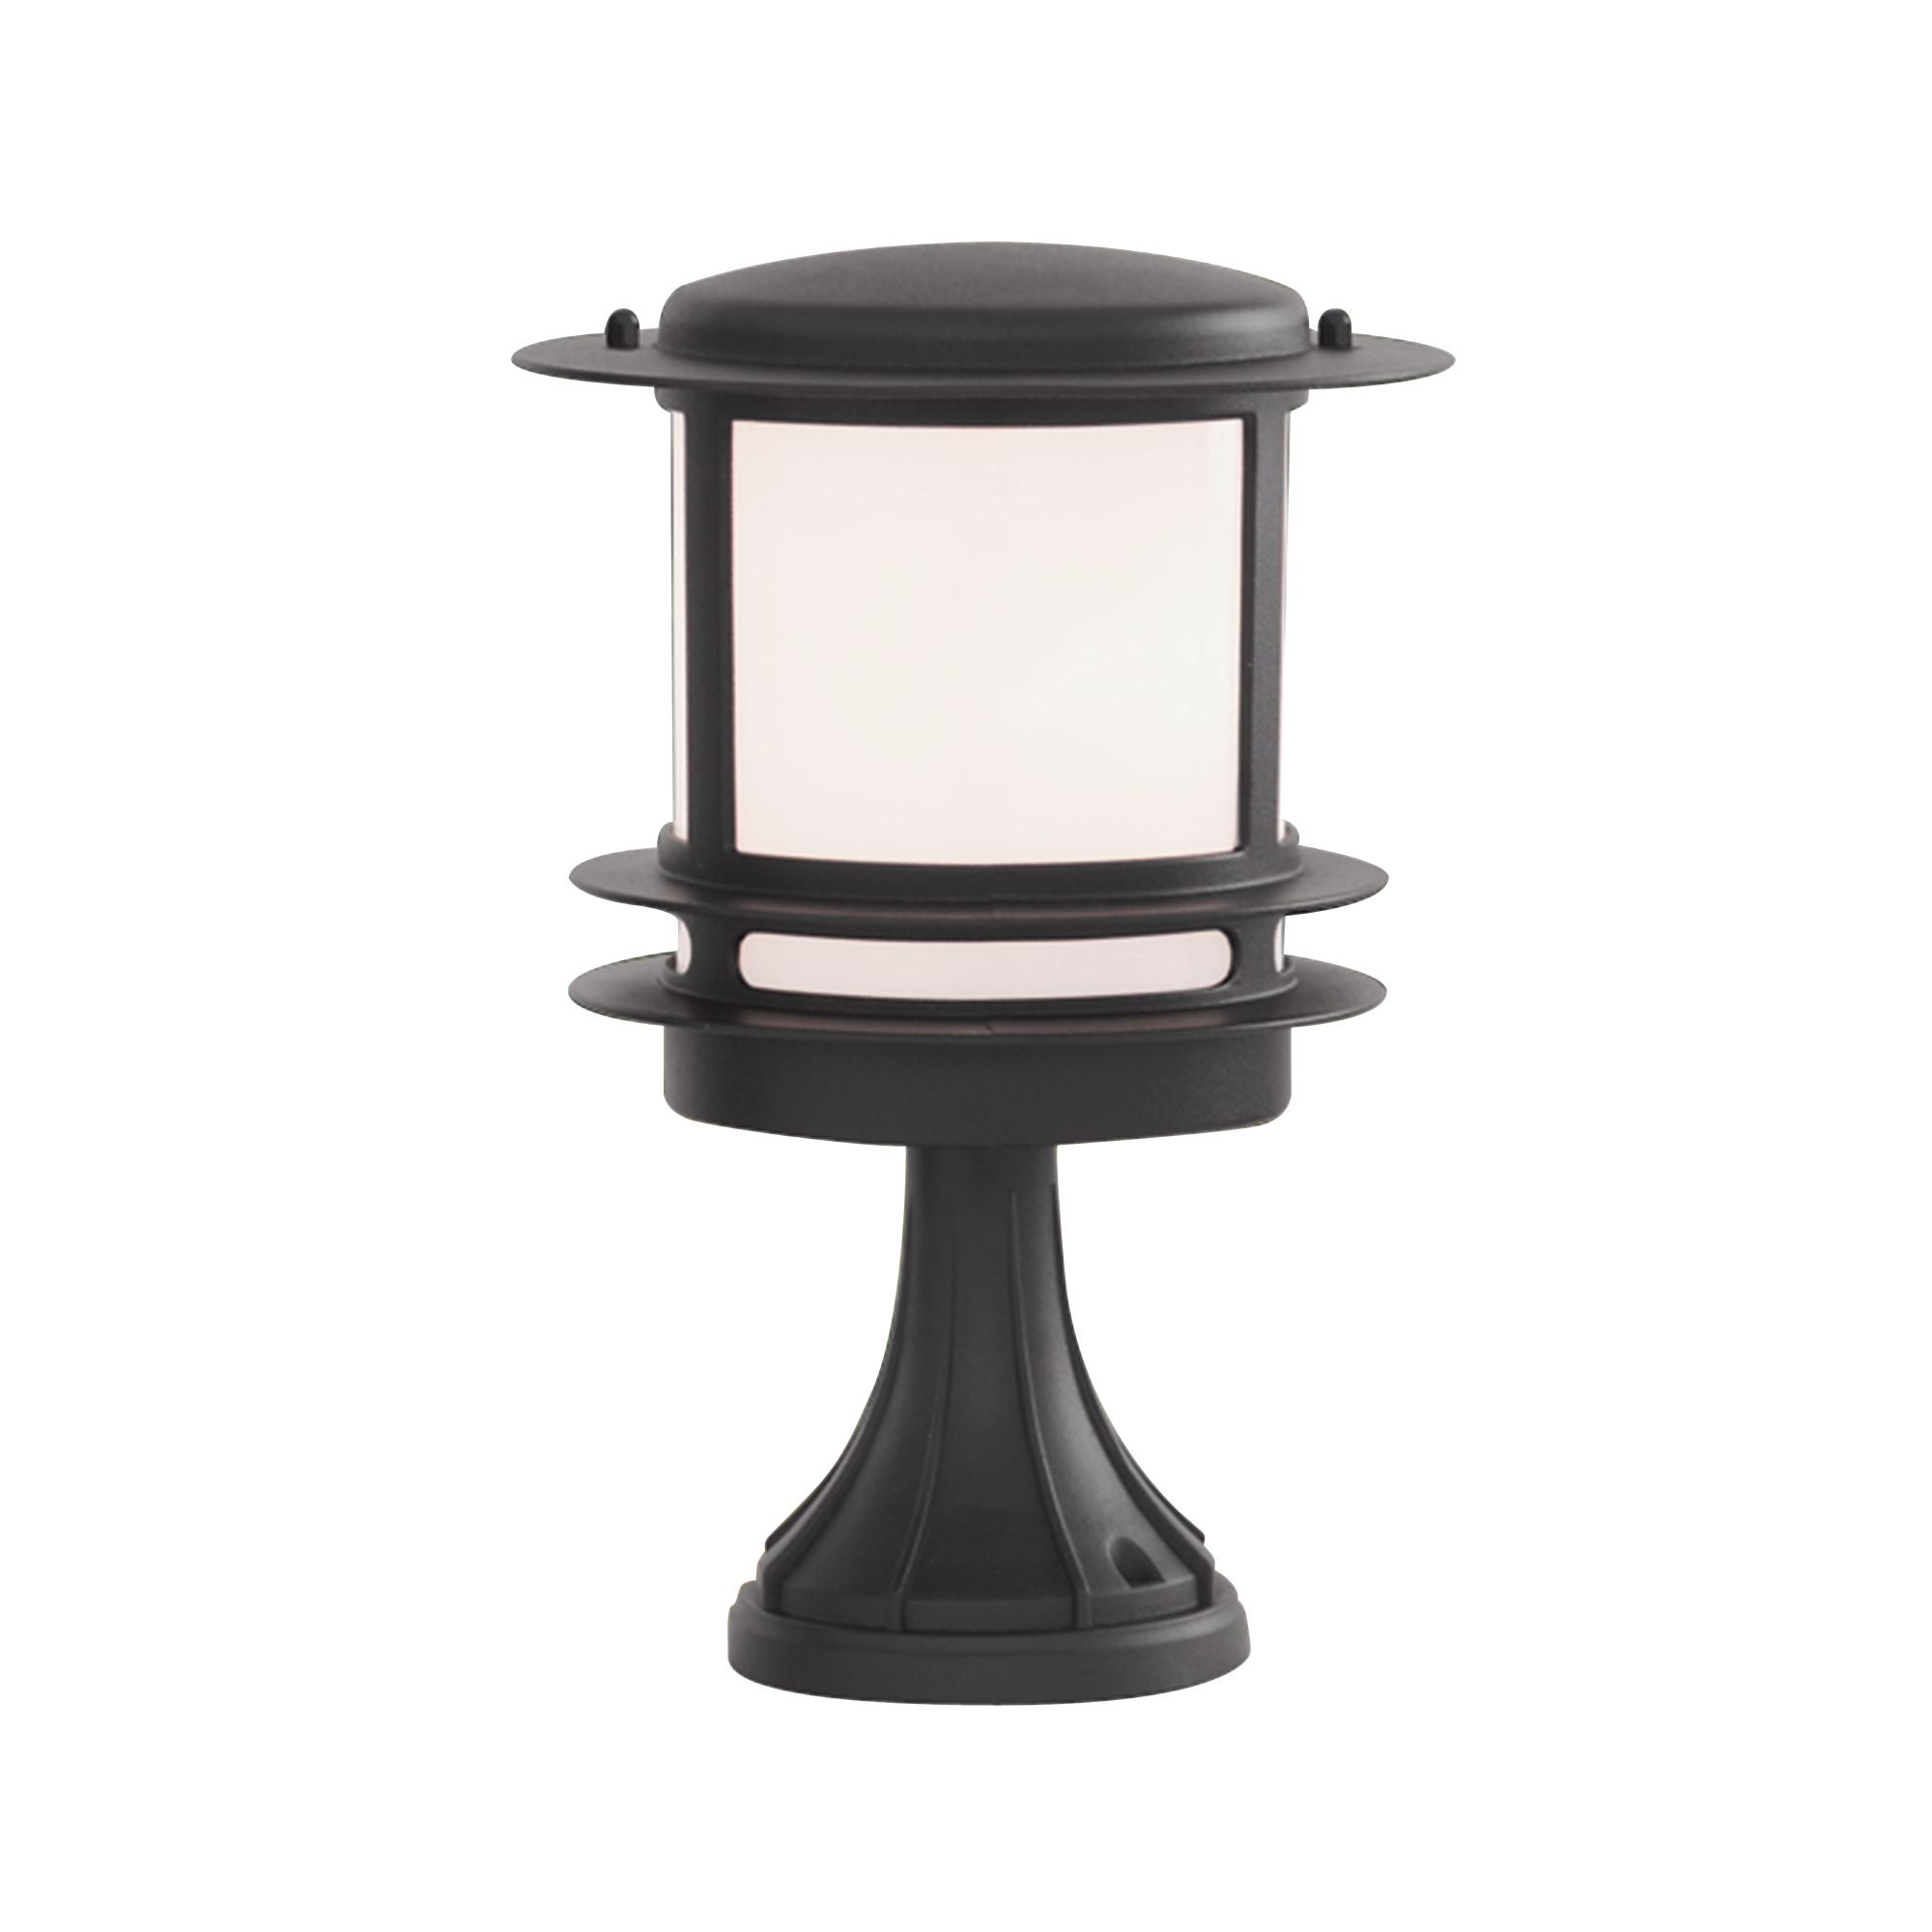 STROUD BOLLARD/POST LAMP - BLACK ALLUMINIUM